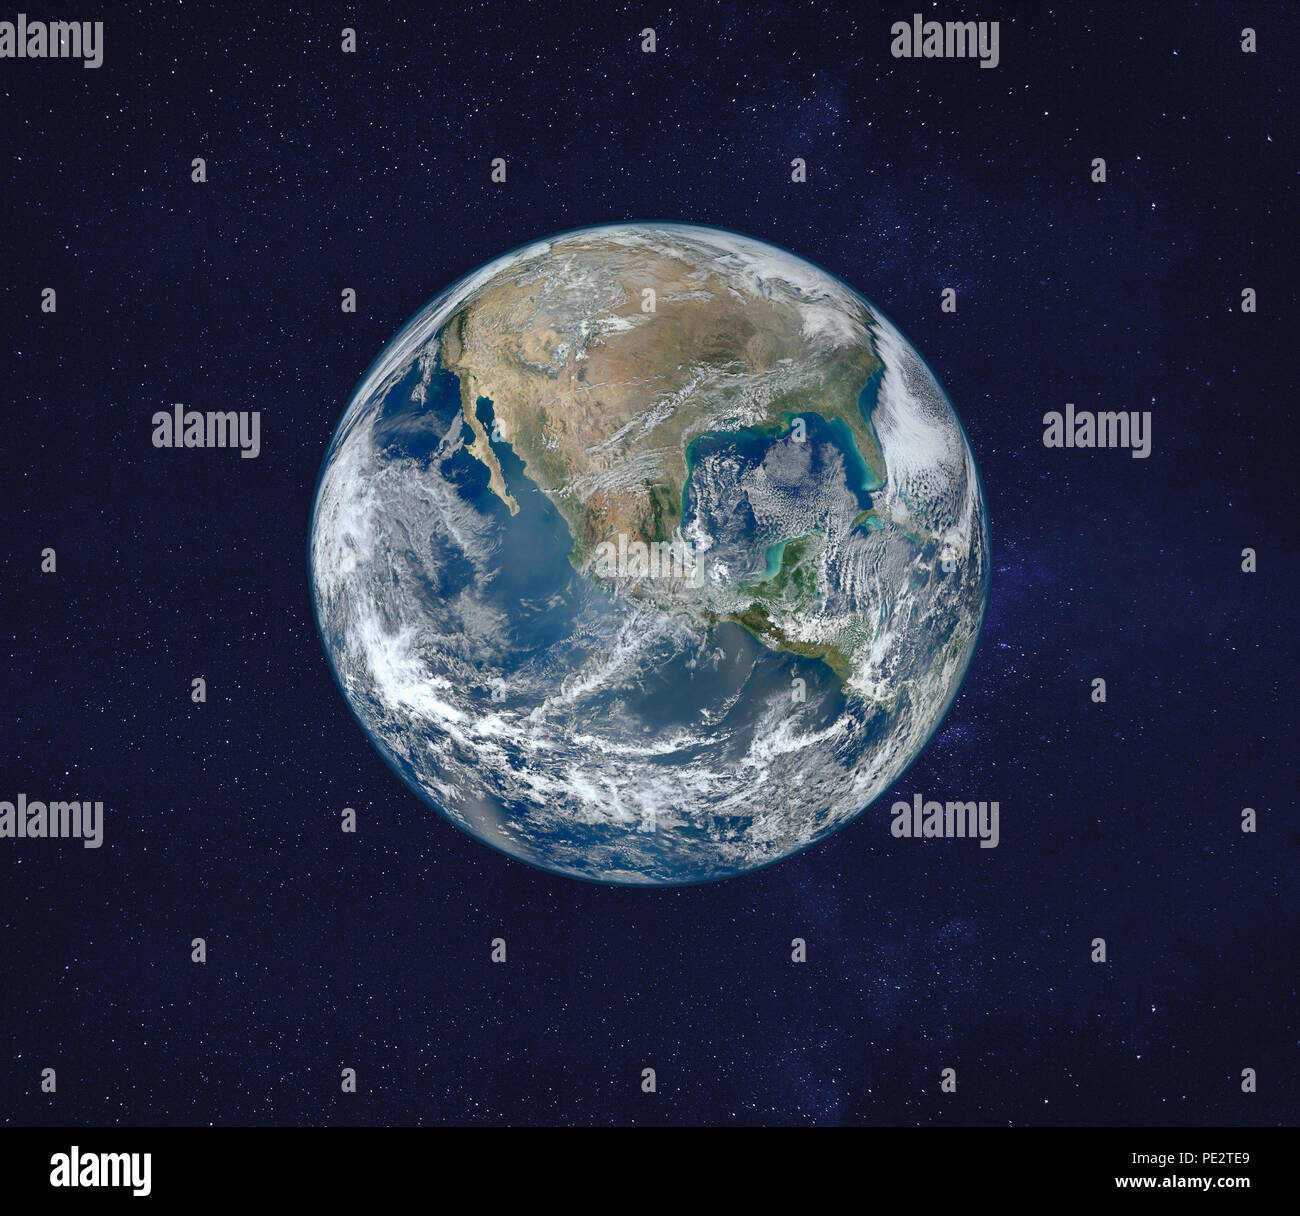 view of planet Earth from space, original image furnished by NASA - Stock Image